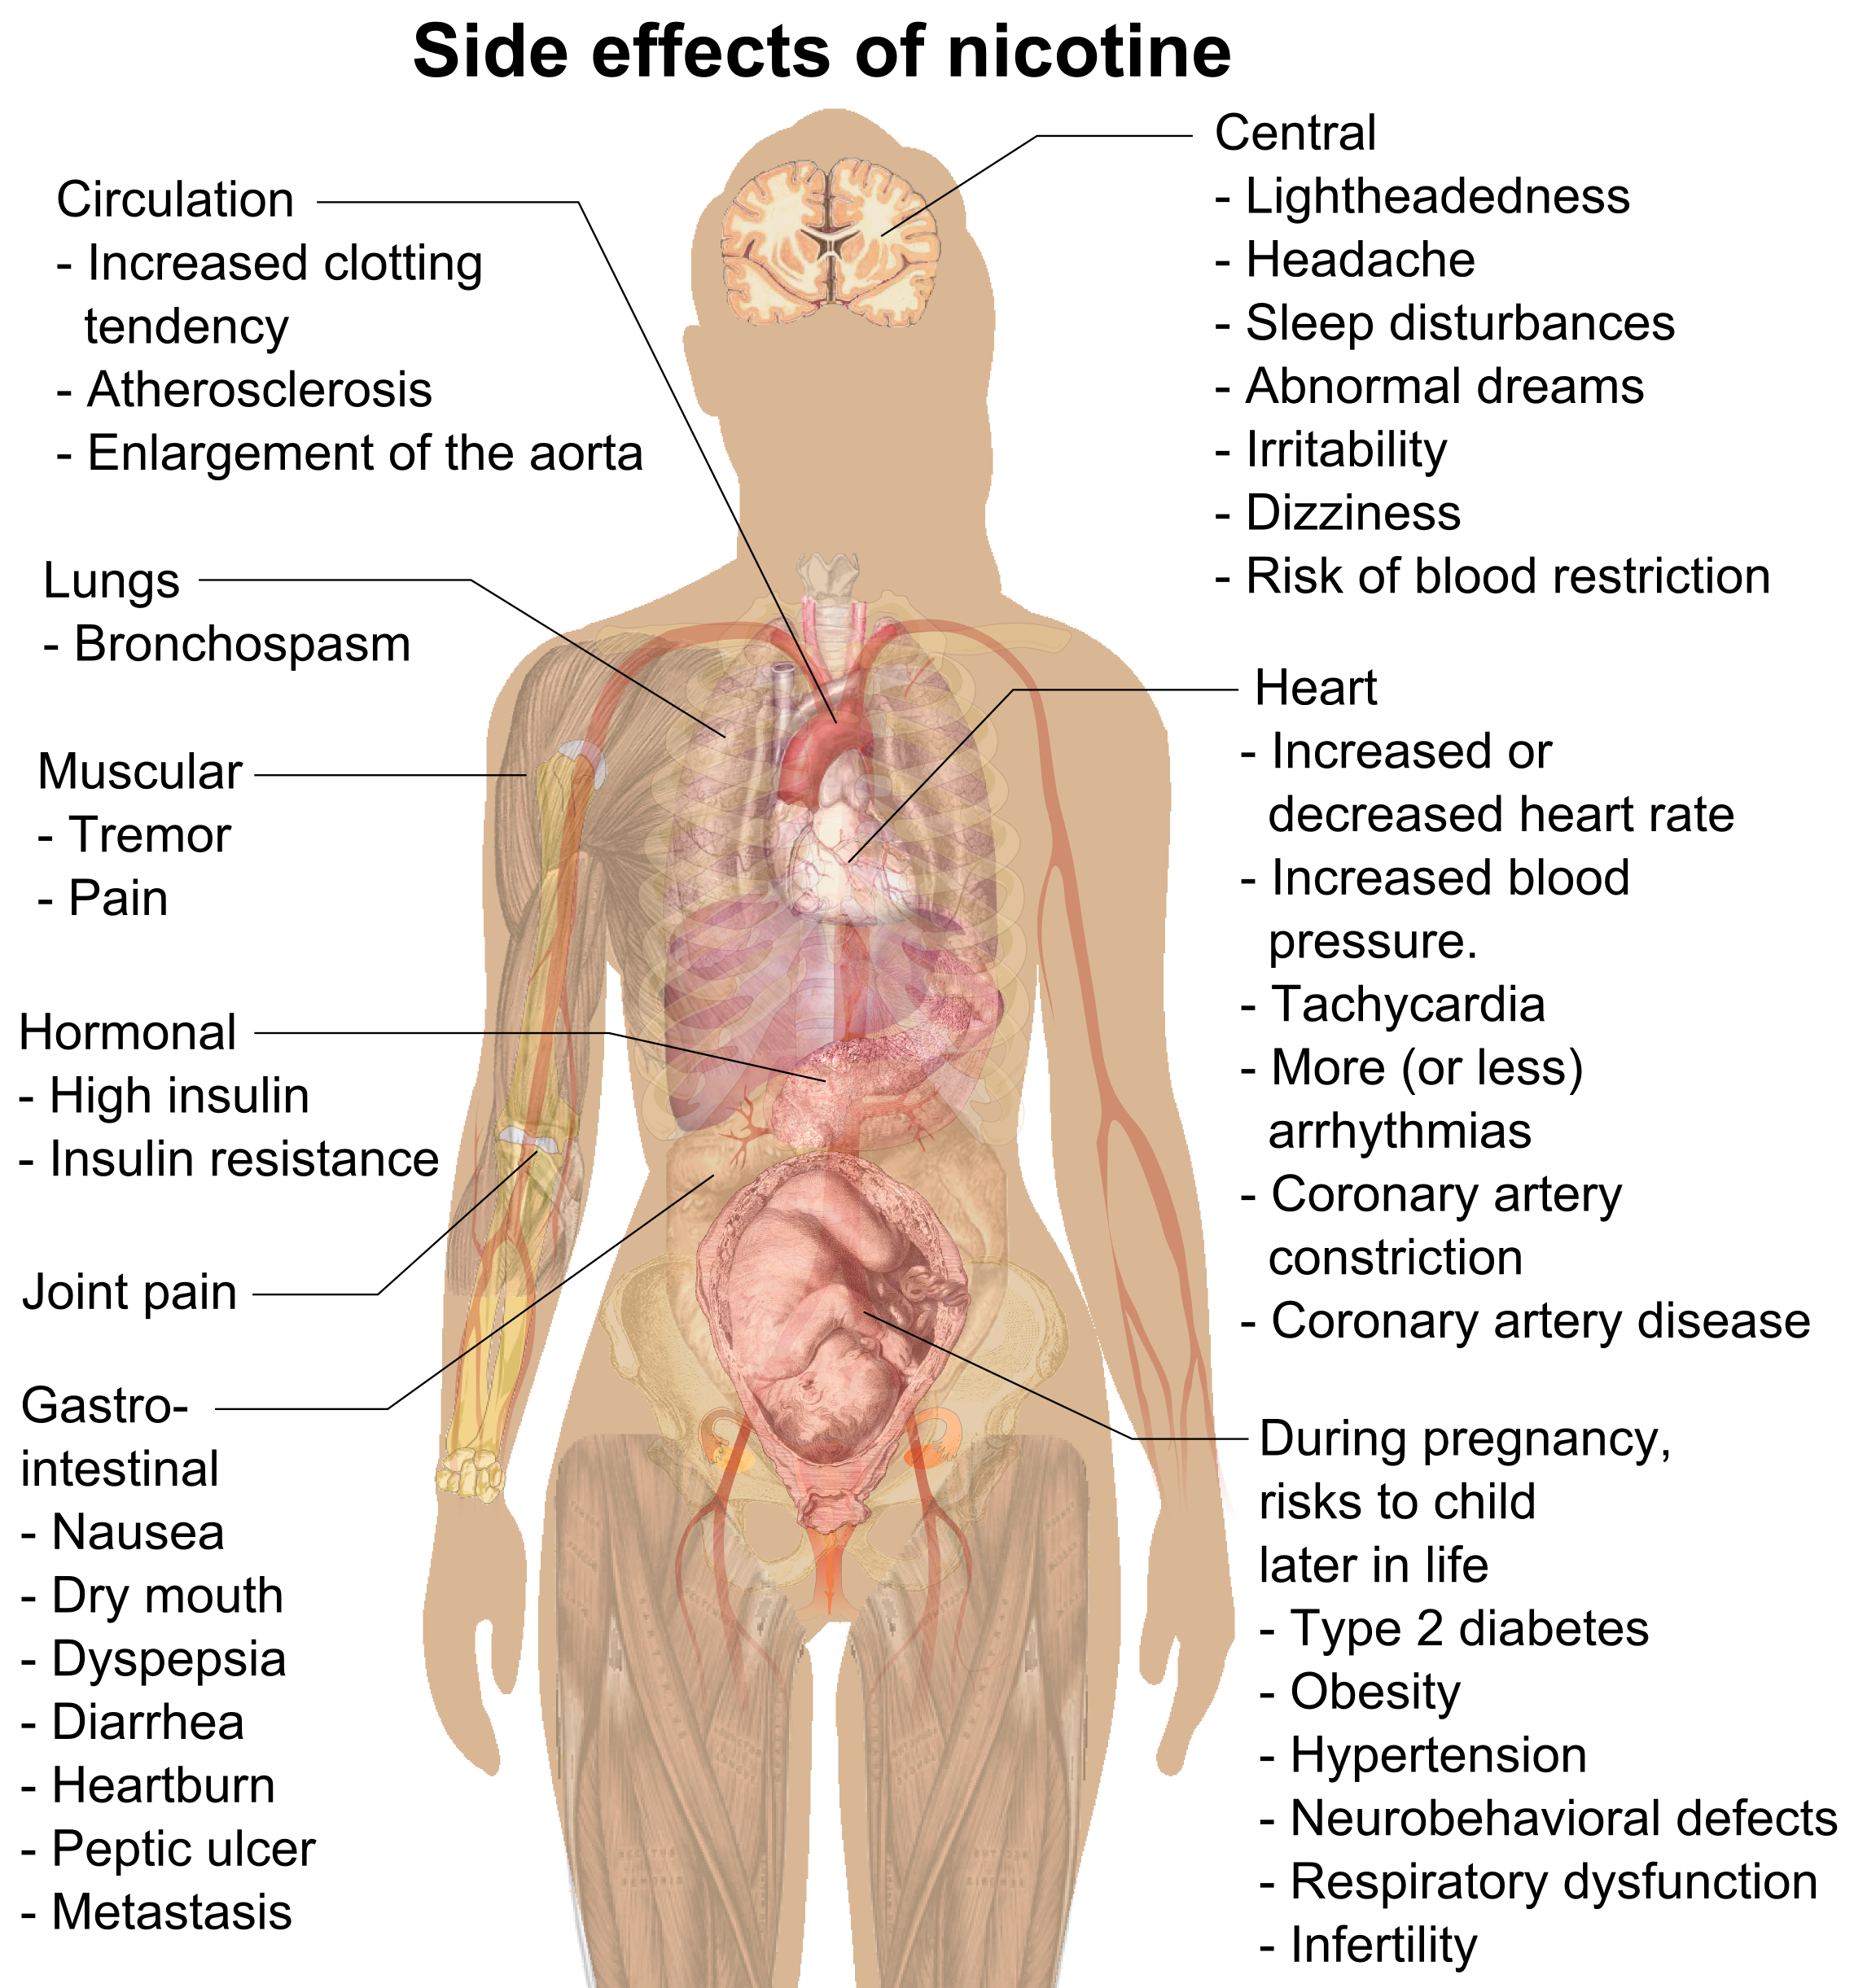 File:Side effects of nicotine.png - Wikimedia Commons